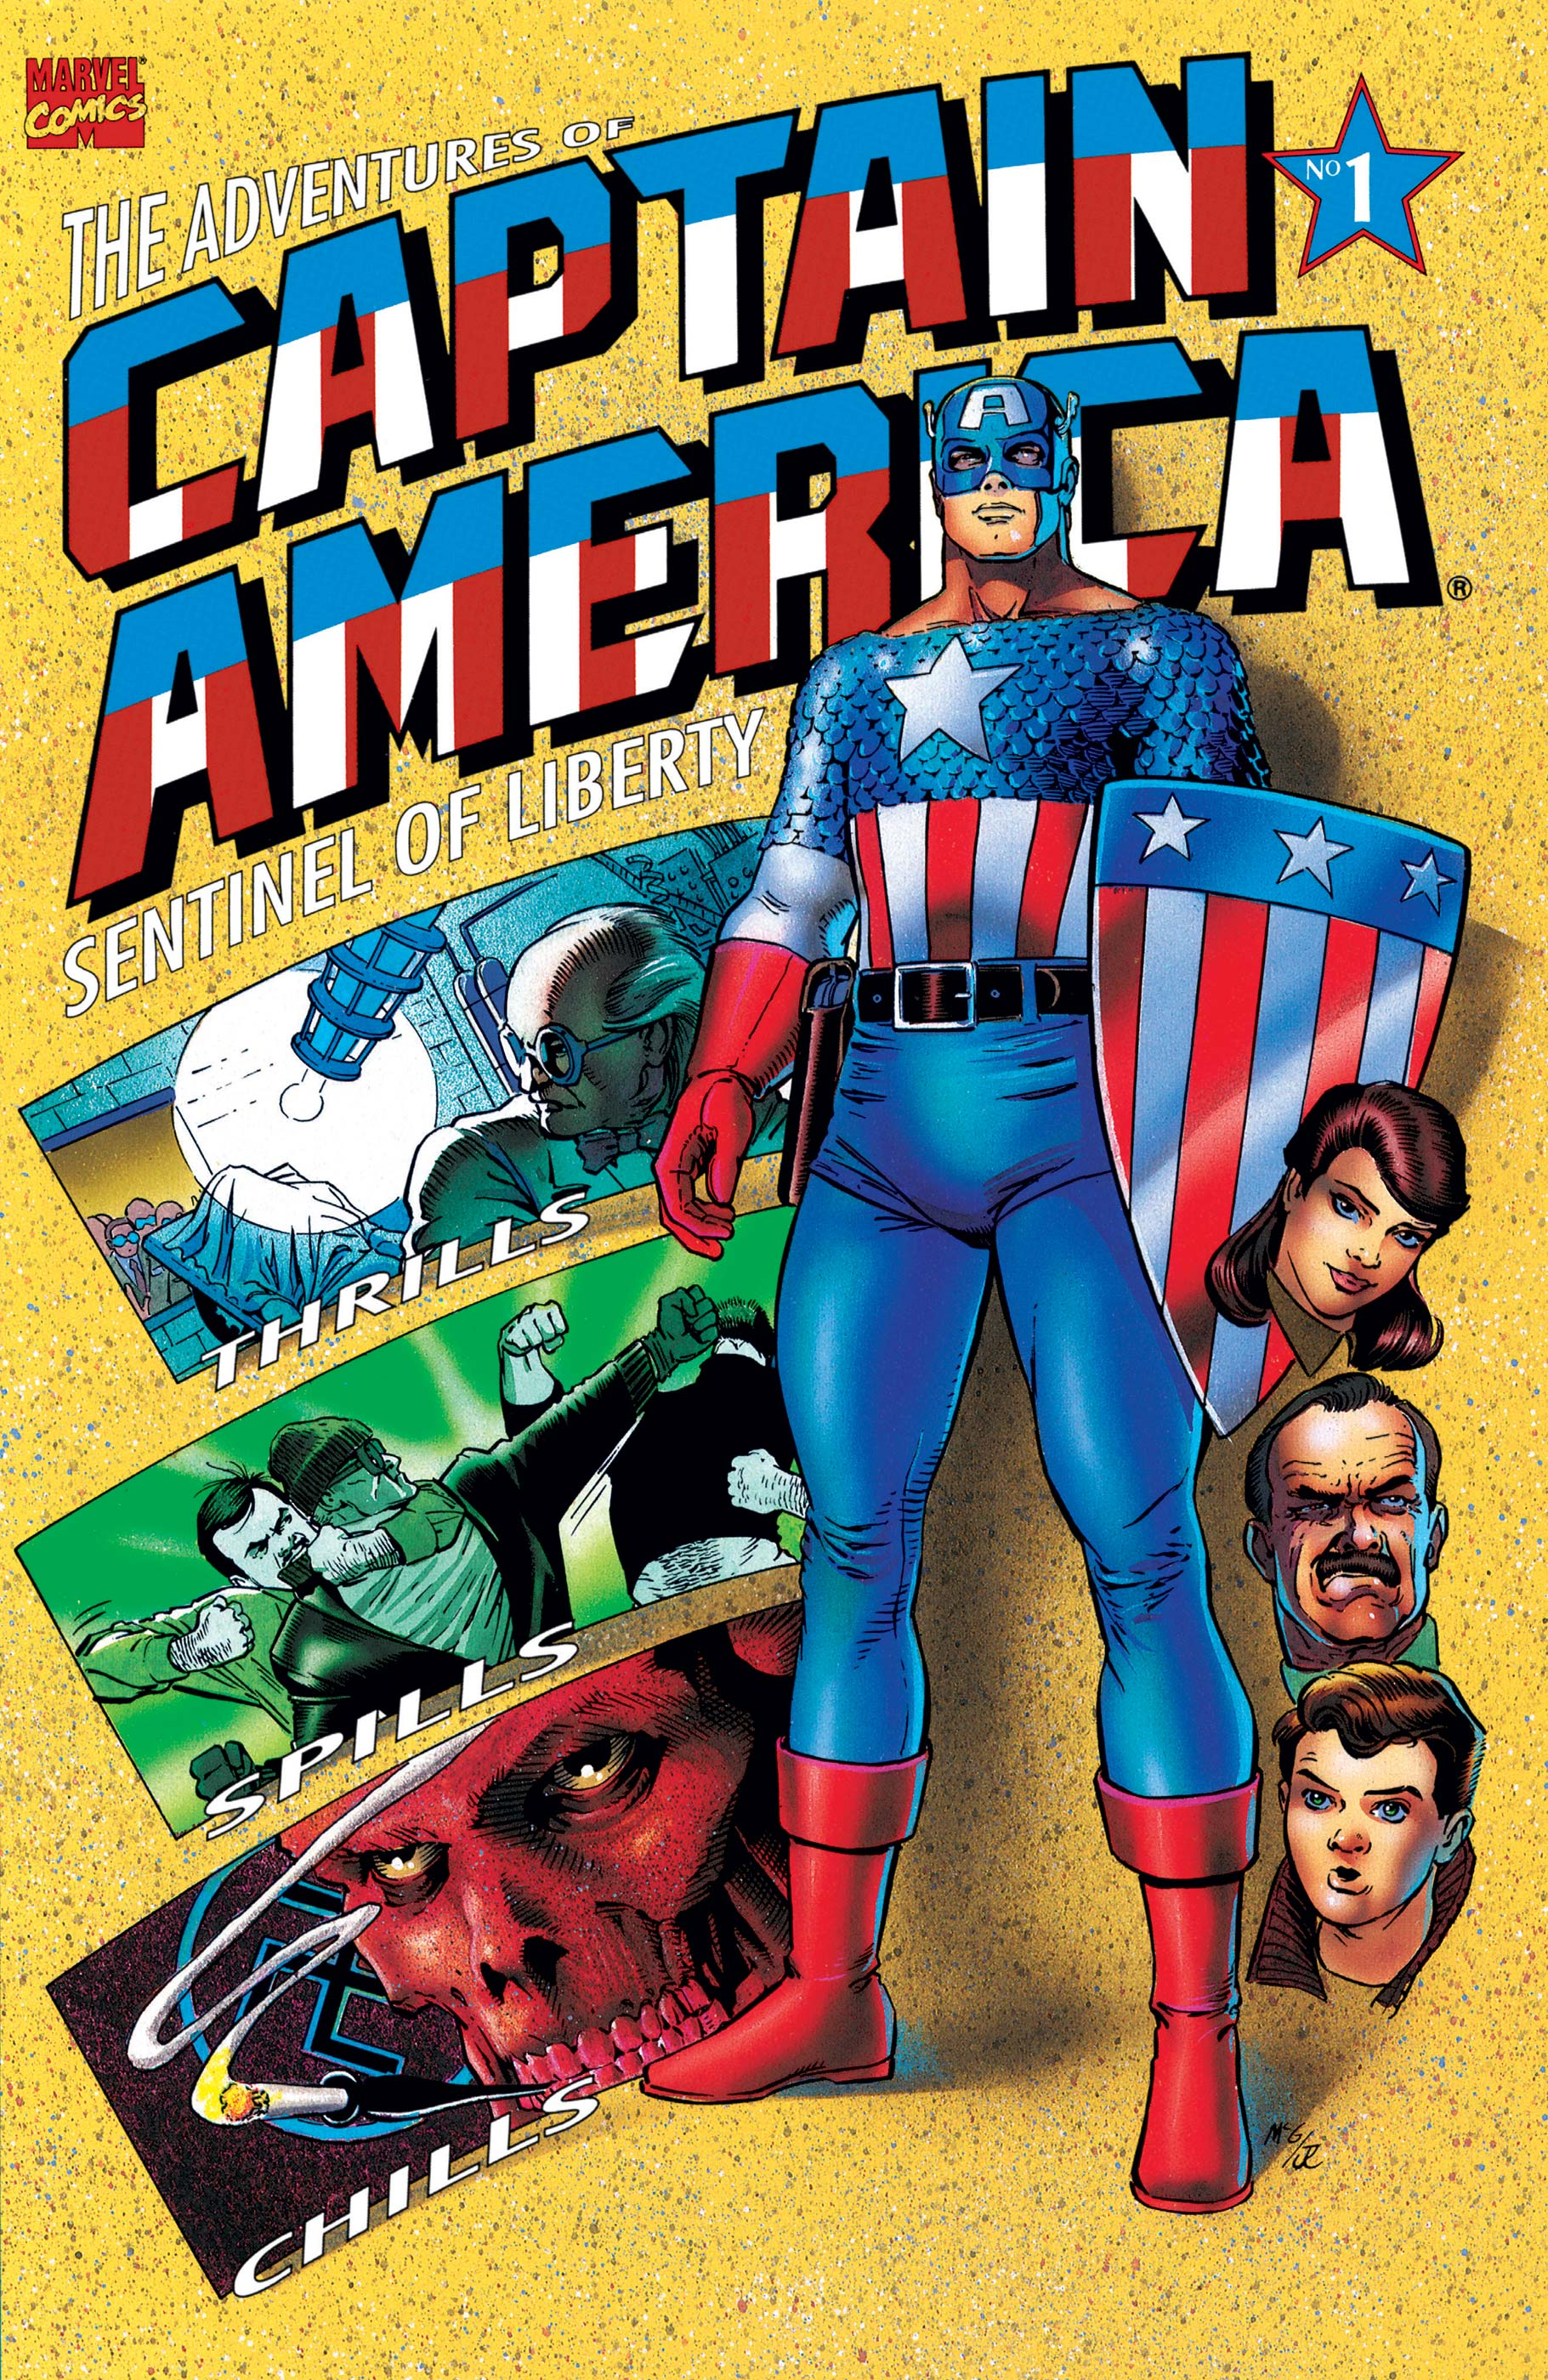 Adventures of Captain America (1991) #1